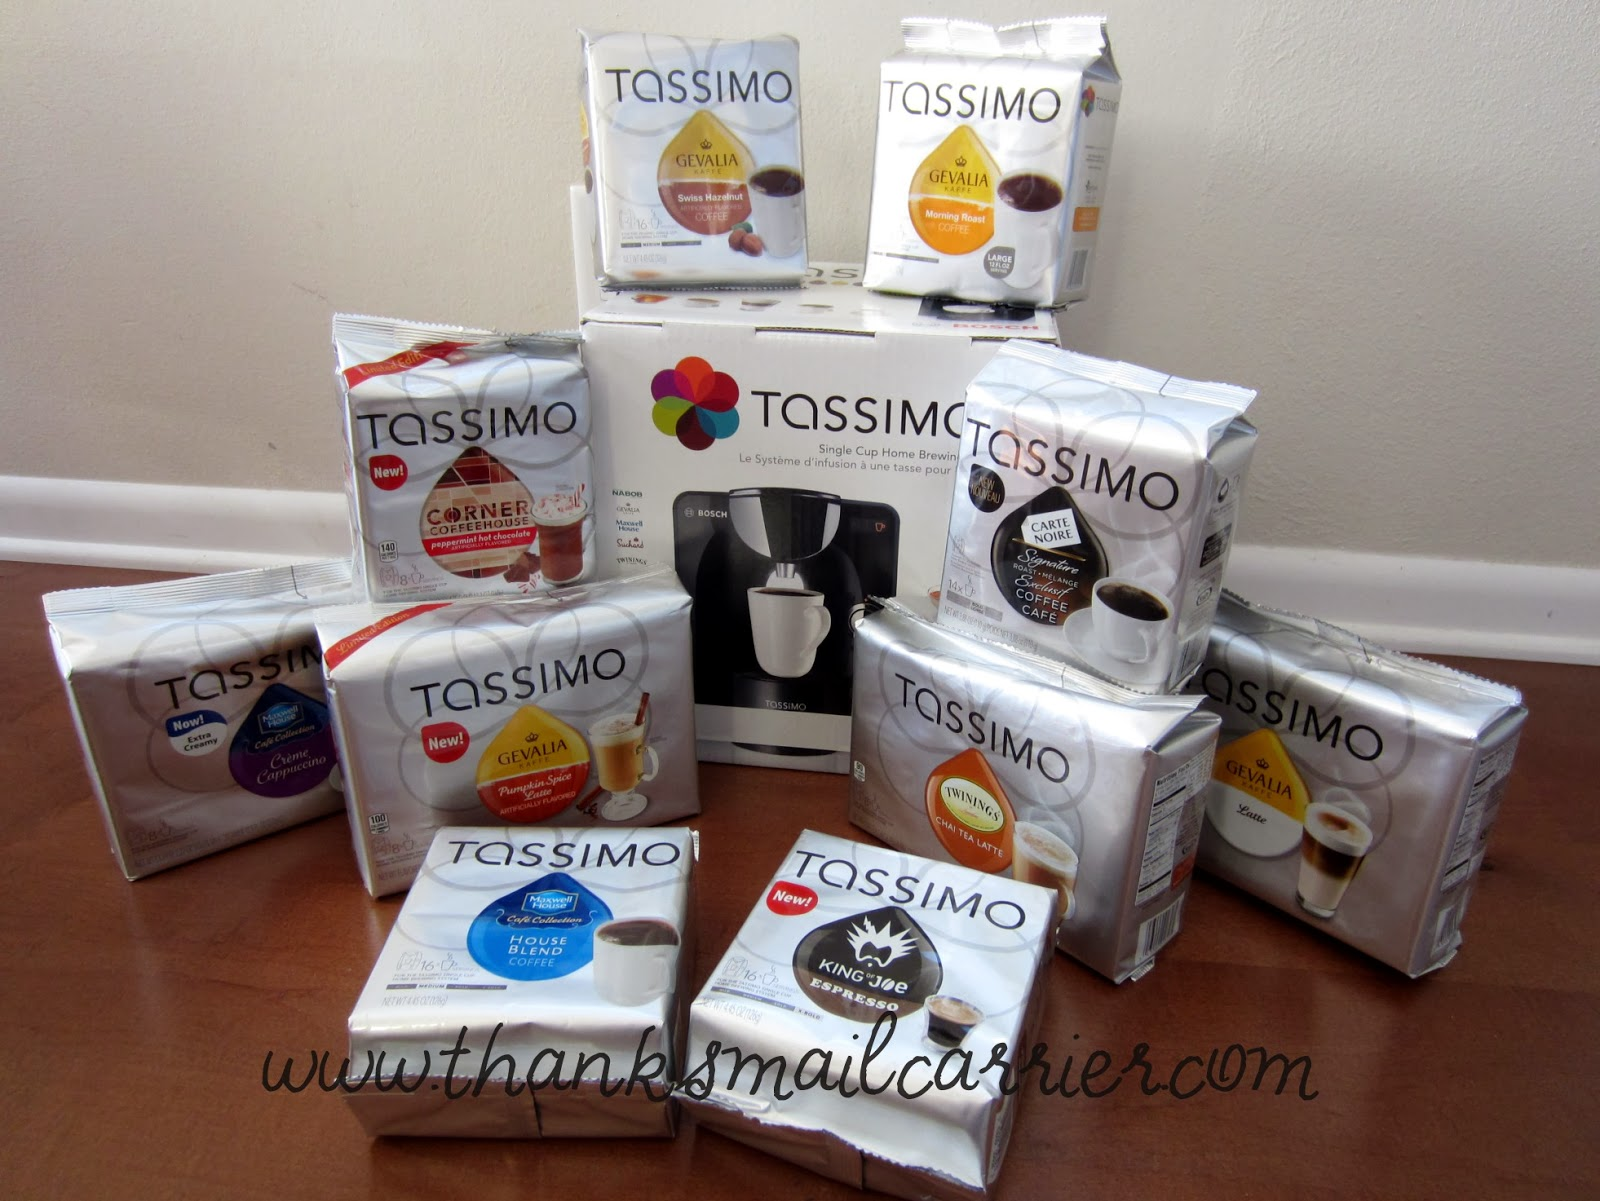 Tassimo T55 single cup brewer